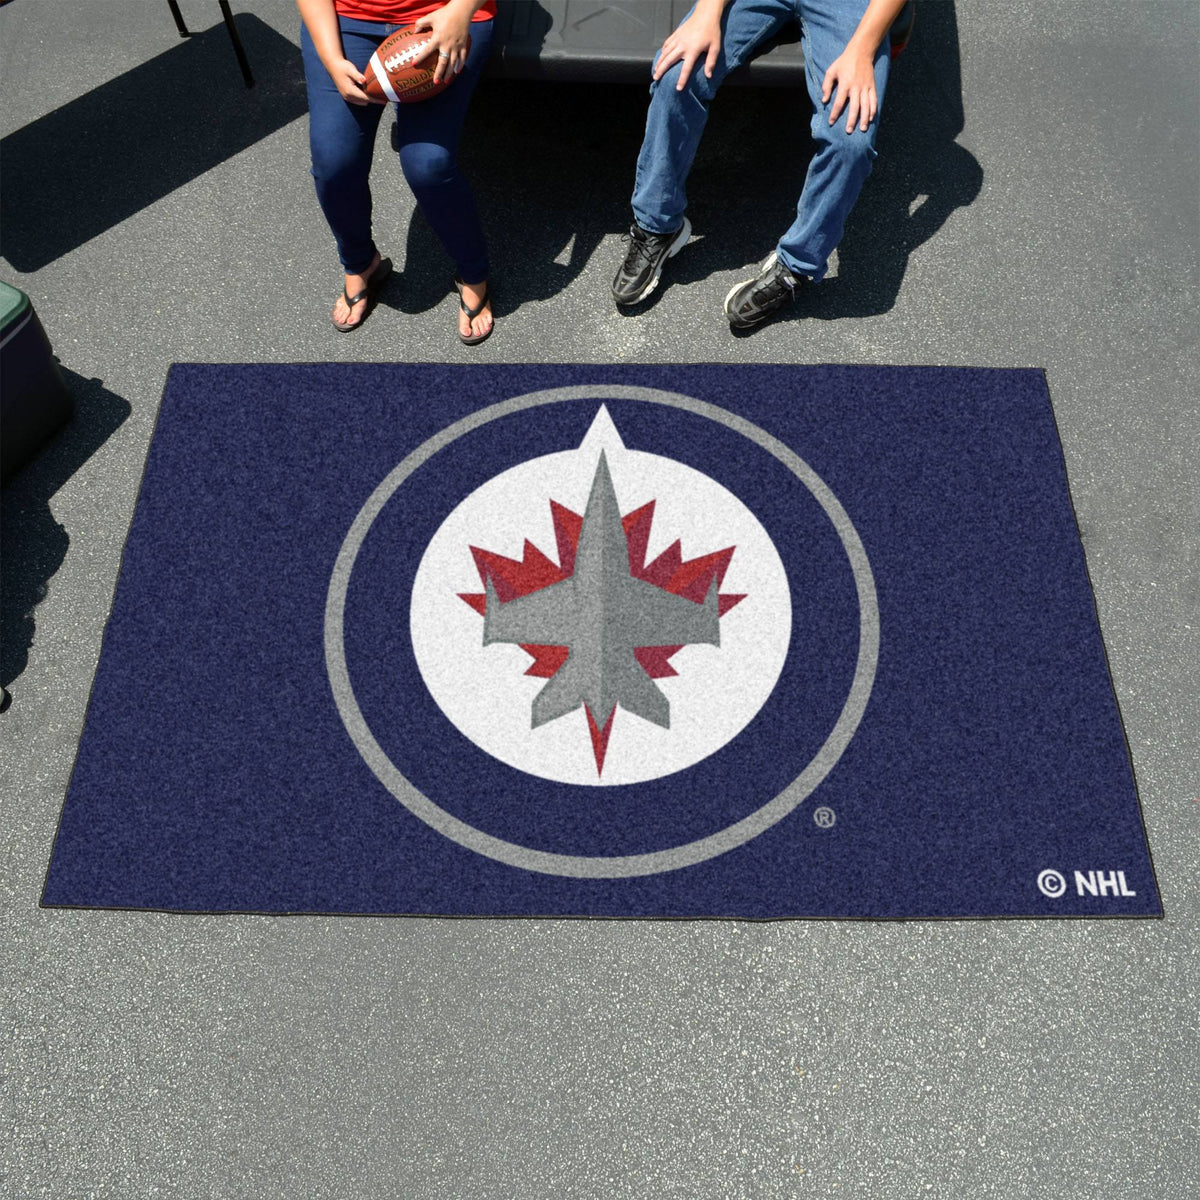 NHL - Ulti-Mat NHL Mats, Rectangular Mats, Ulti-Mat, NHL, Home Fan Mats Winnipeg Jets